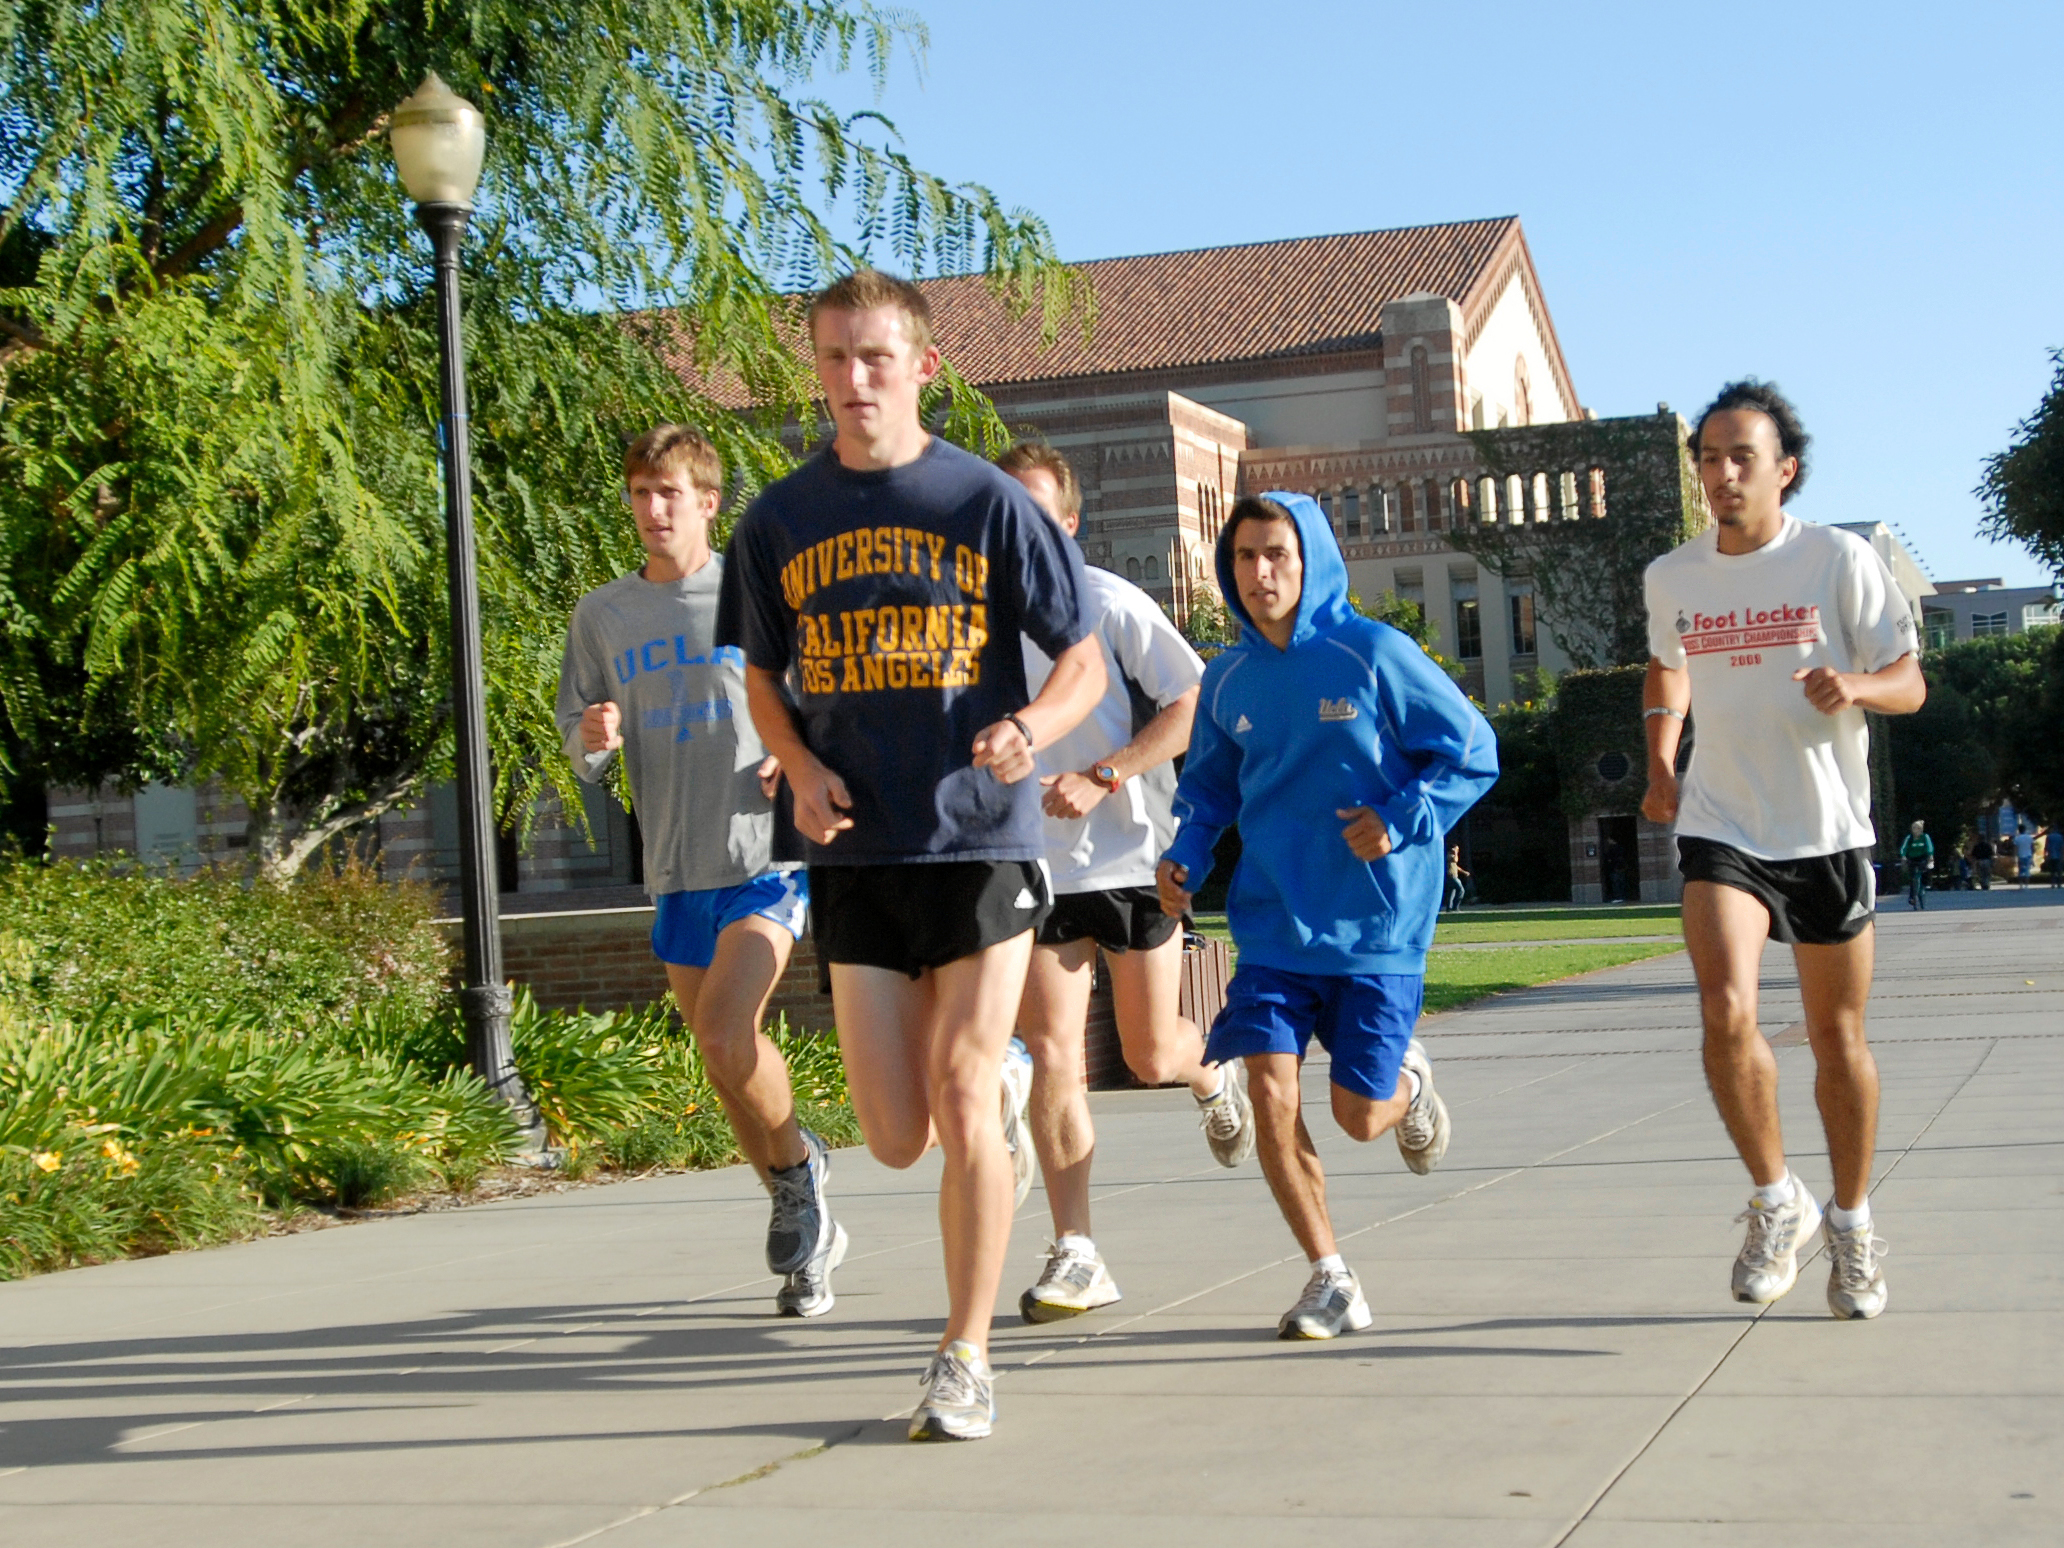 Many UCLA students exercise daily on campus. From running the campus perimeter to attending yoga classes at the Wooden Center, there are many options to stay fit and for students to take pride in being healthy.